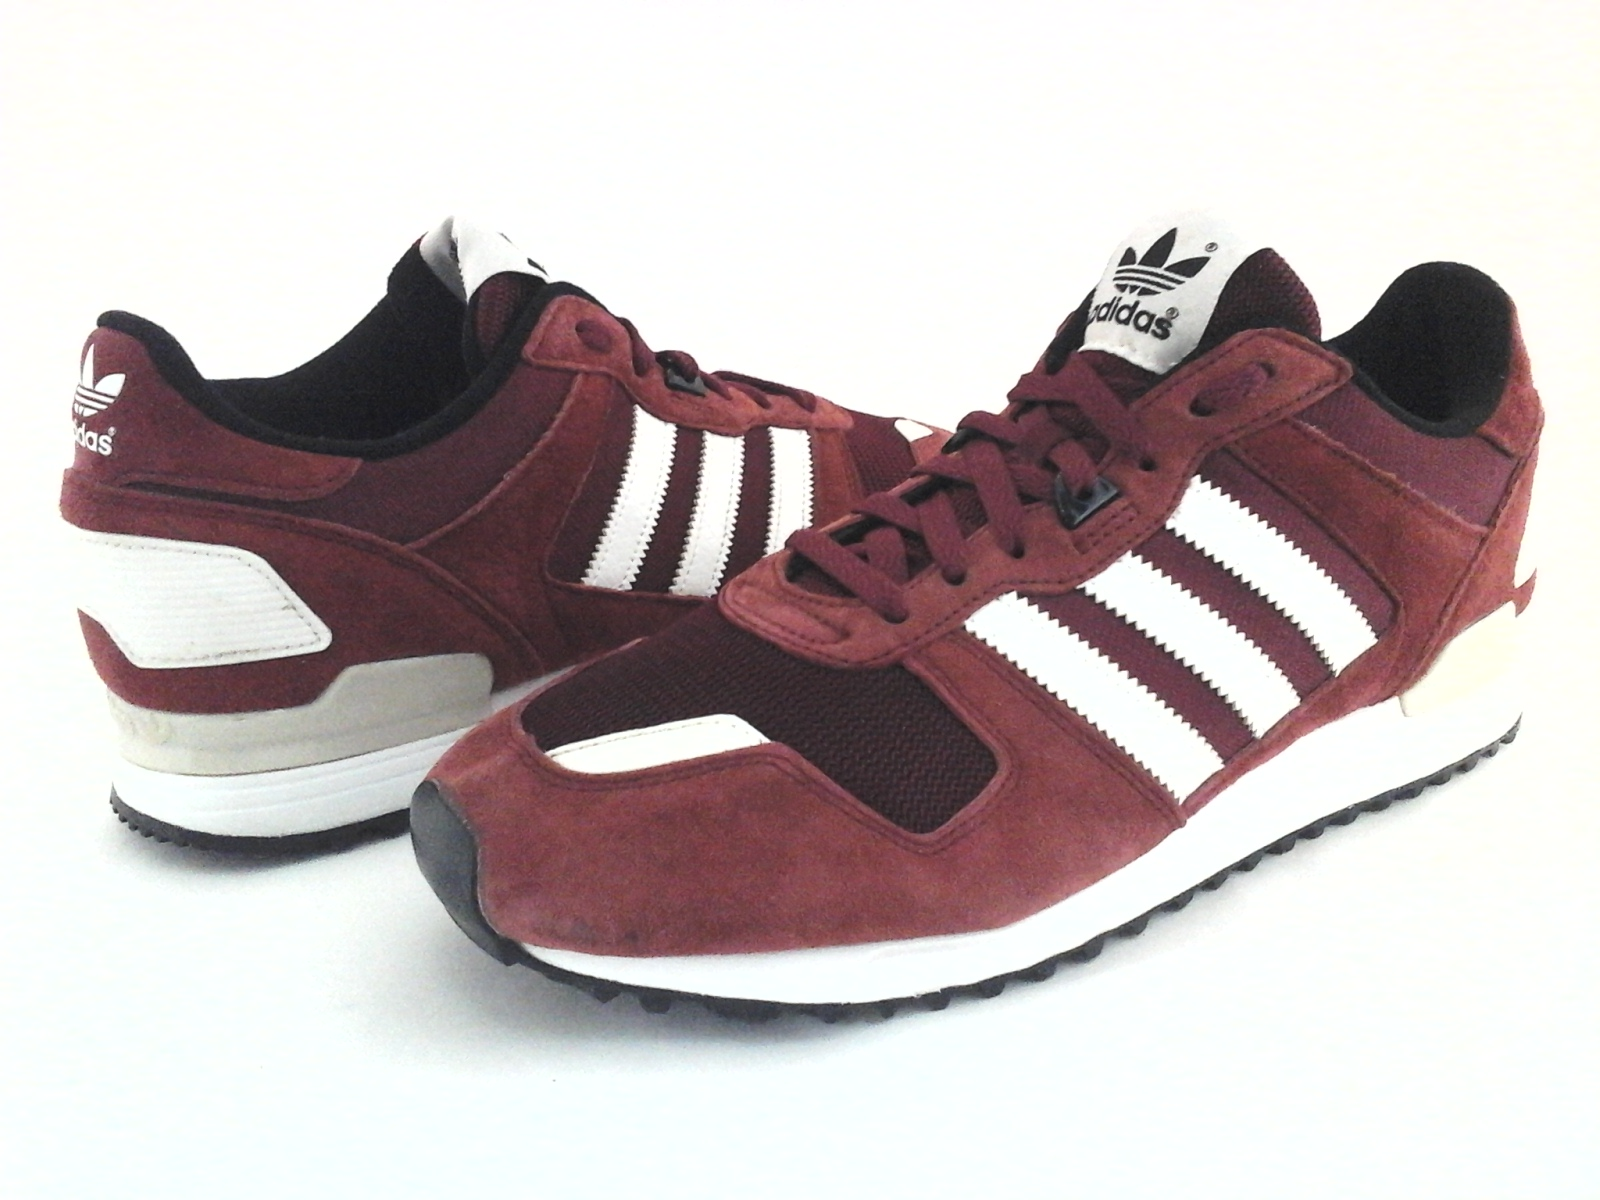 ADIDAS Originals Shoes ZX 700 Retro Suede Burgundy Sneakers B24840 Mens US 10/44